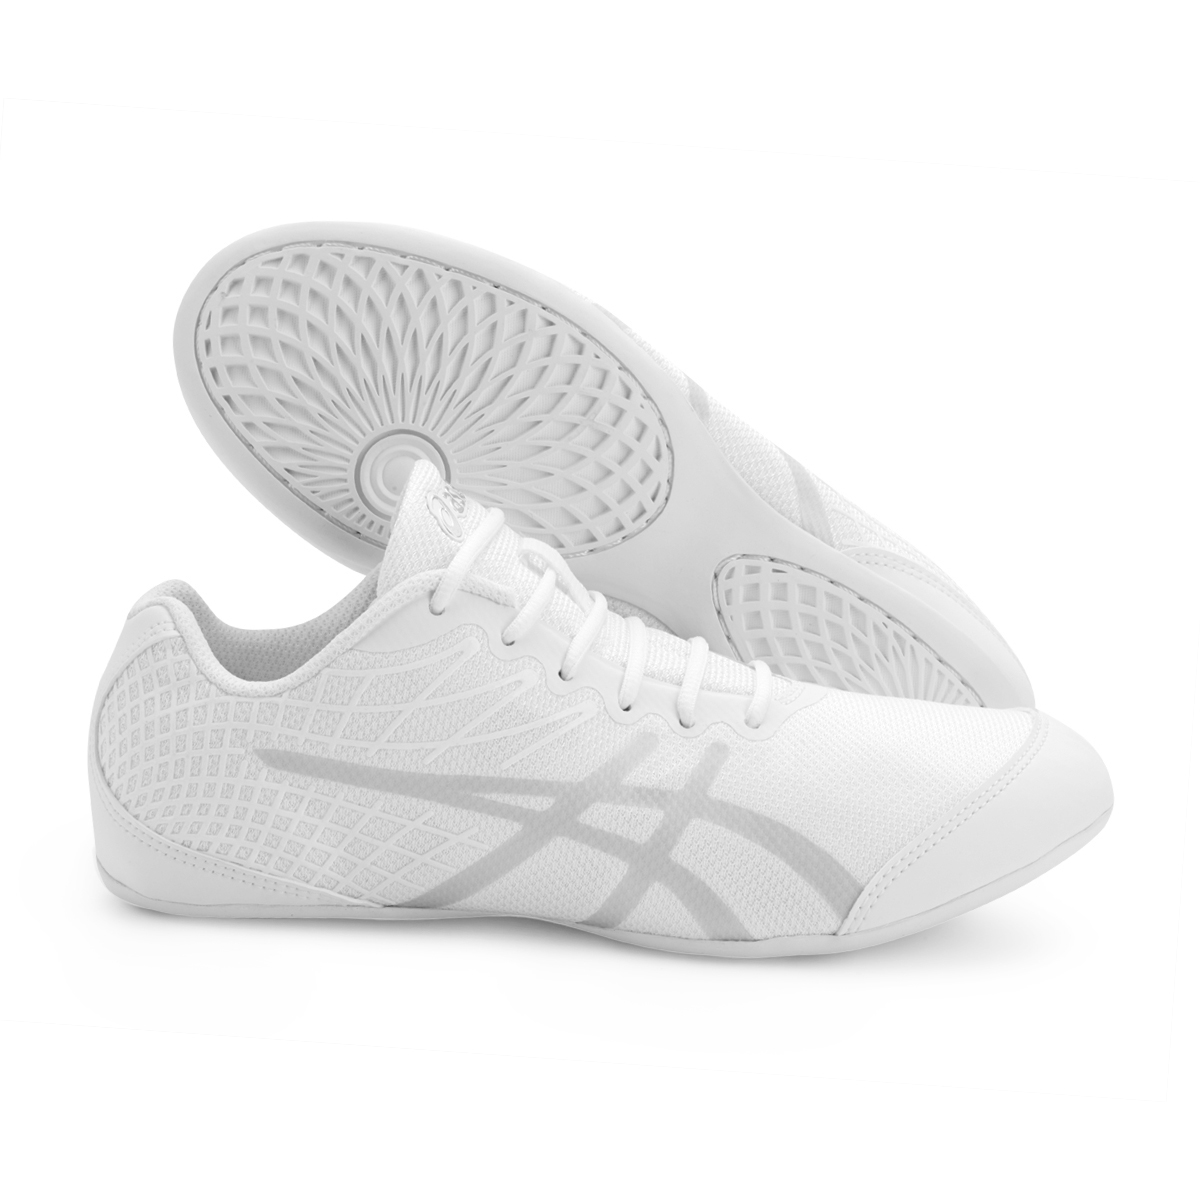 Asics Shoes Asics Gel-Ultralyte 2 Cheer Shoe | High-quality cheerleading ...